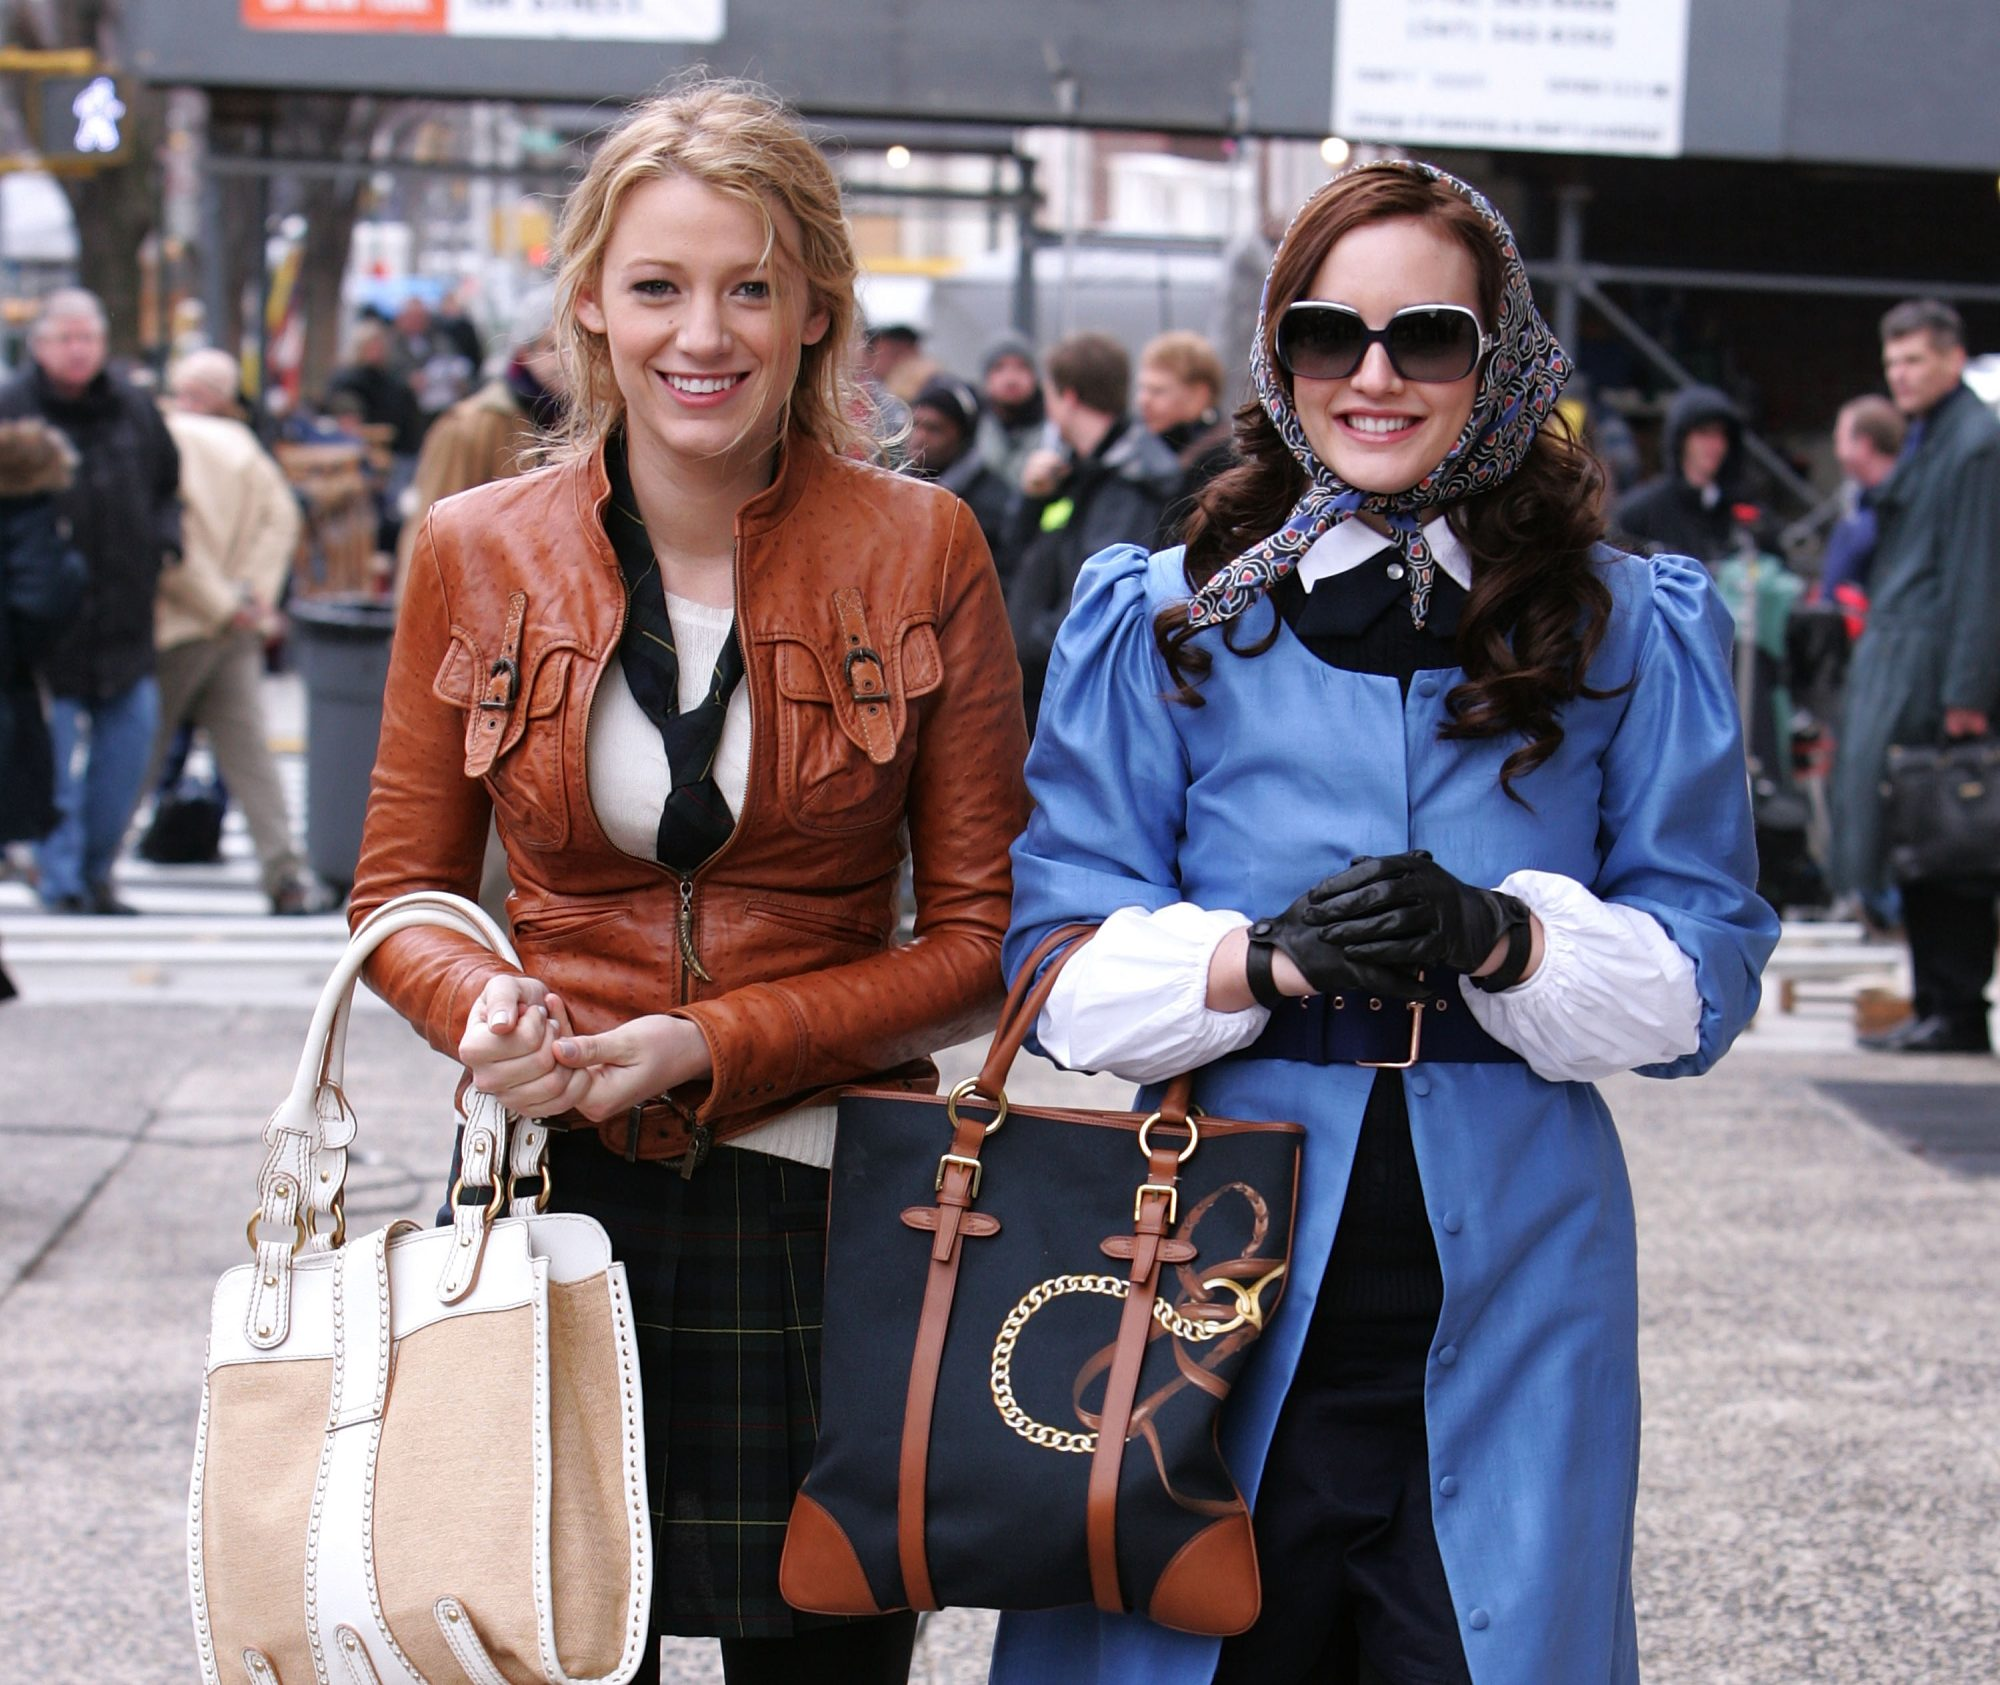 Blake Lively gossip girl coach purse